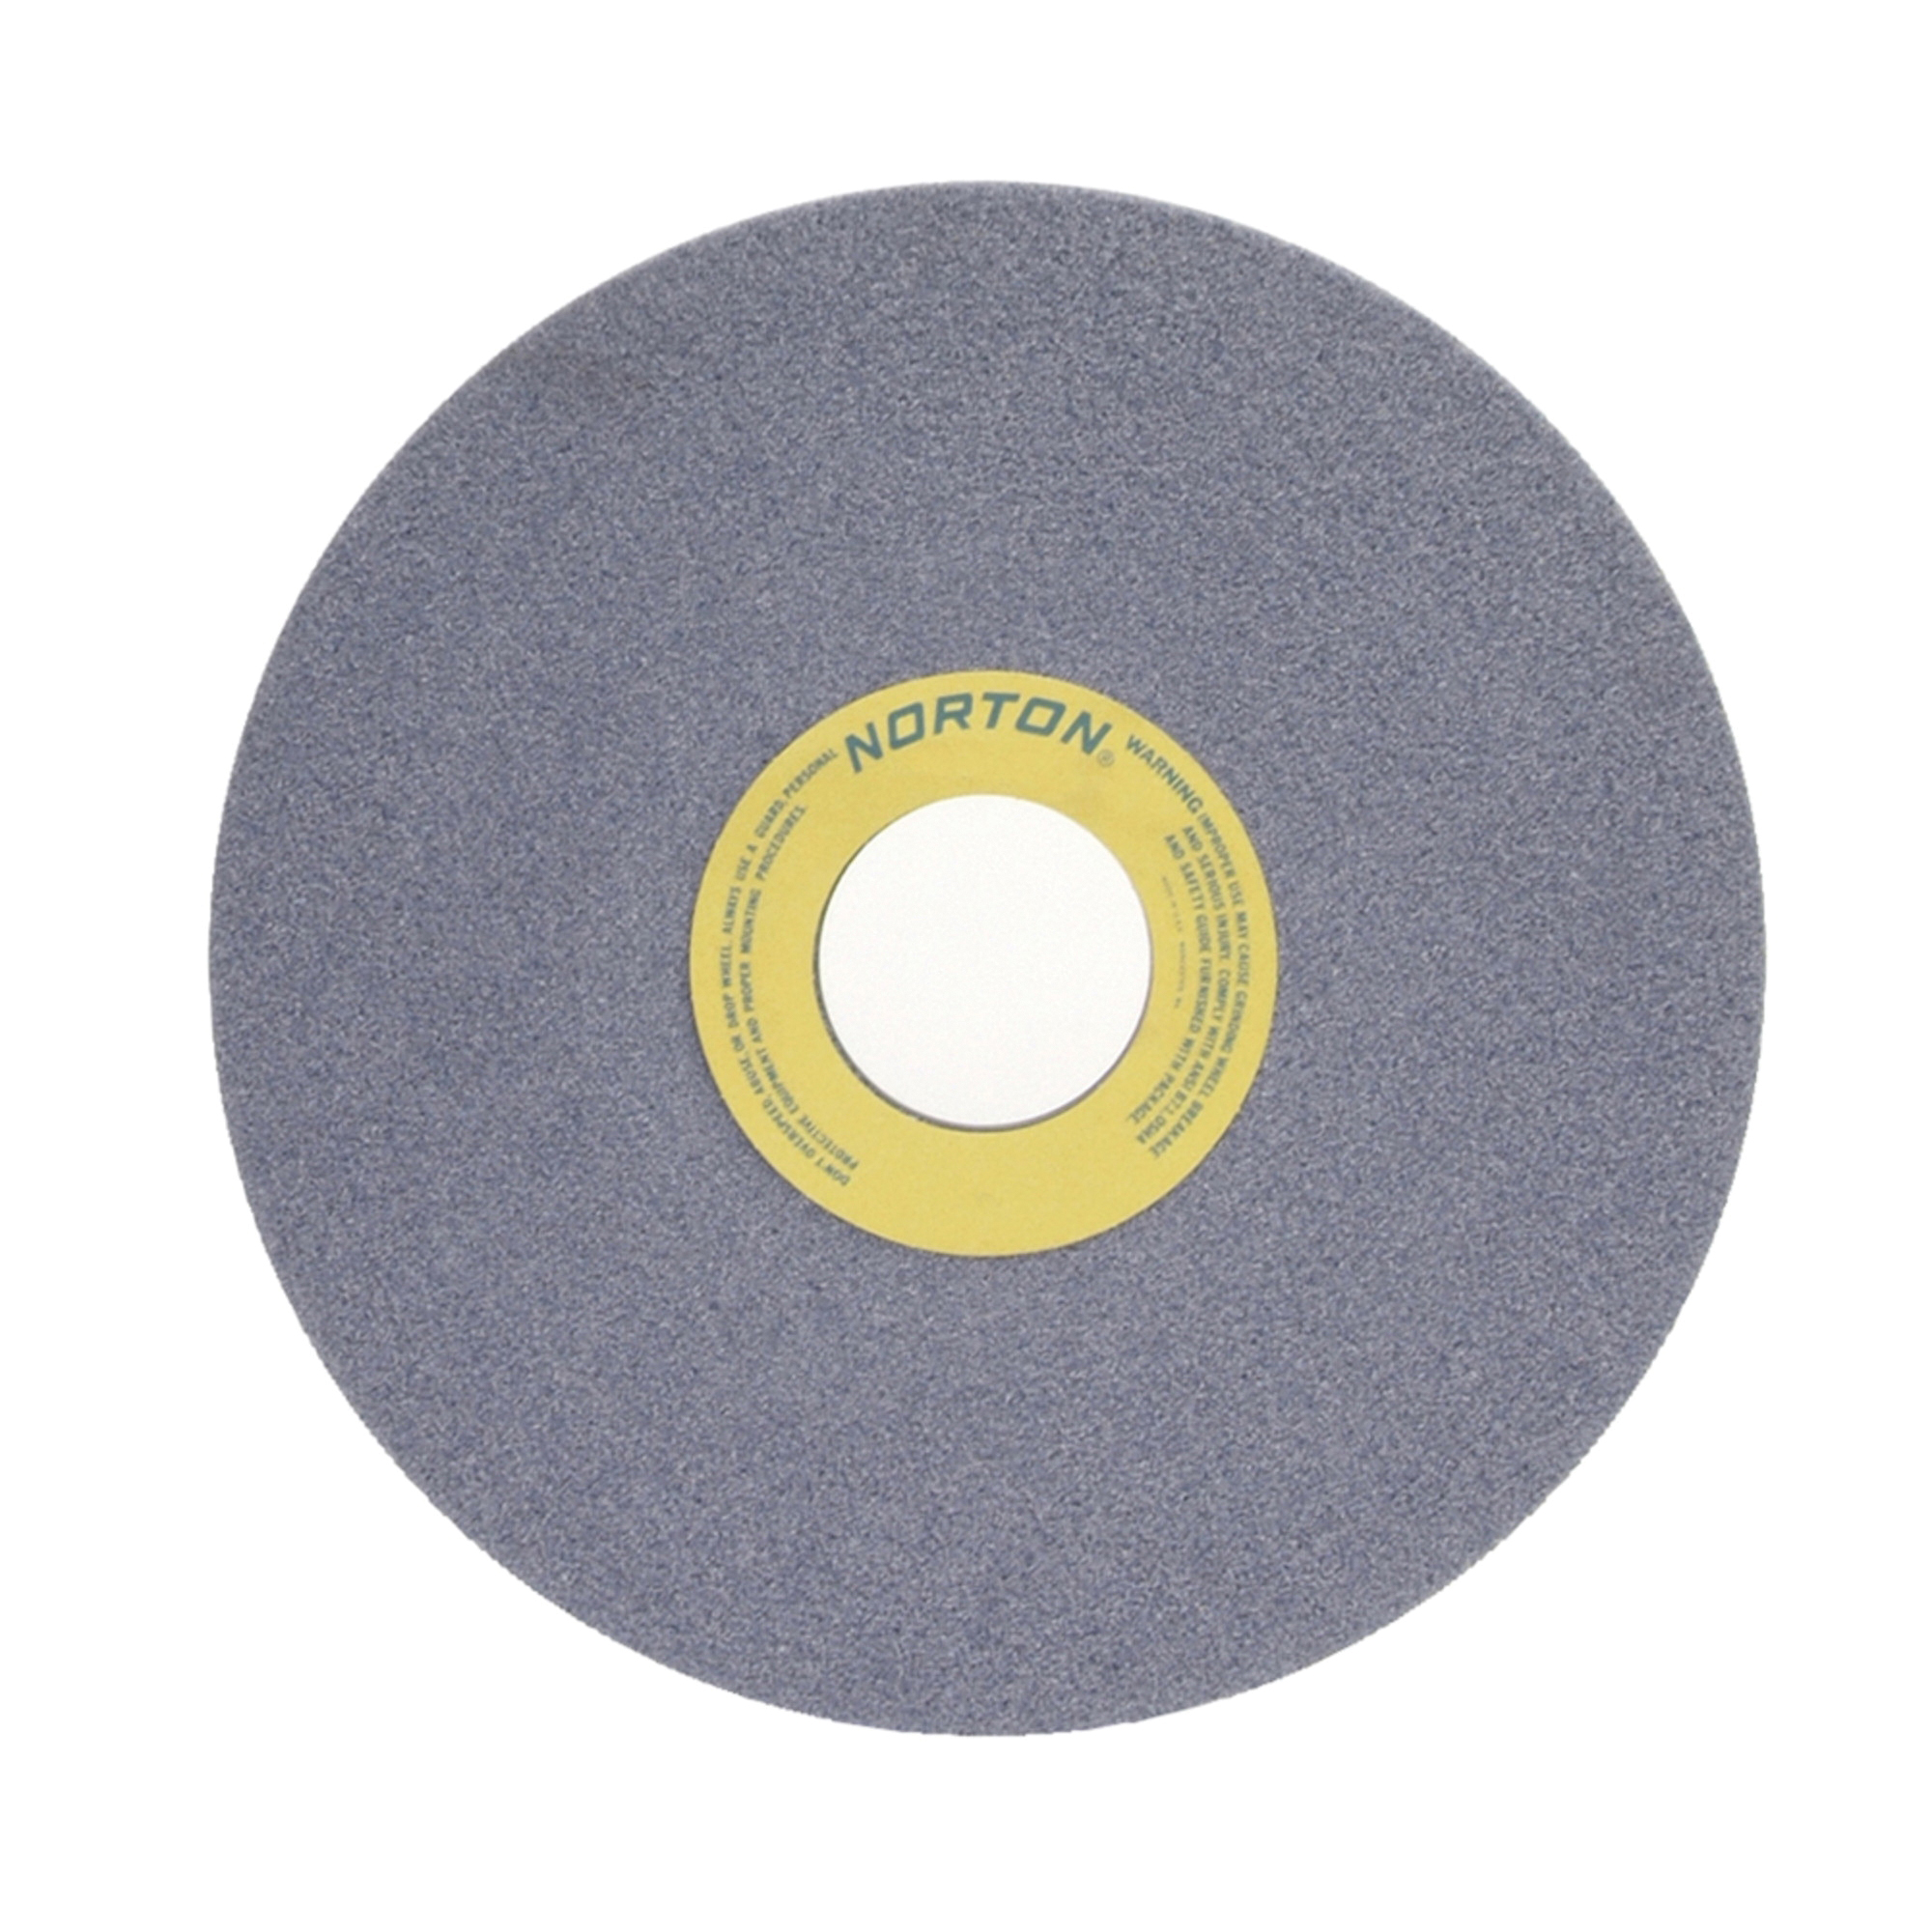 Norton® 66253363927 32A Straight Toolroom Wheel, 14 in Dia x 1 in THK, 3 in Center Hole, 60 Grit, Aluminum Oxide Abrasive